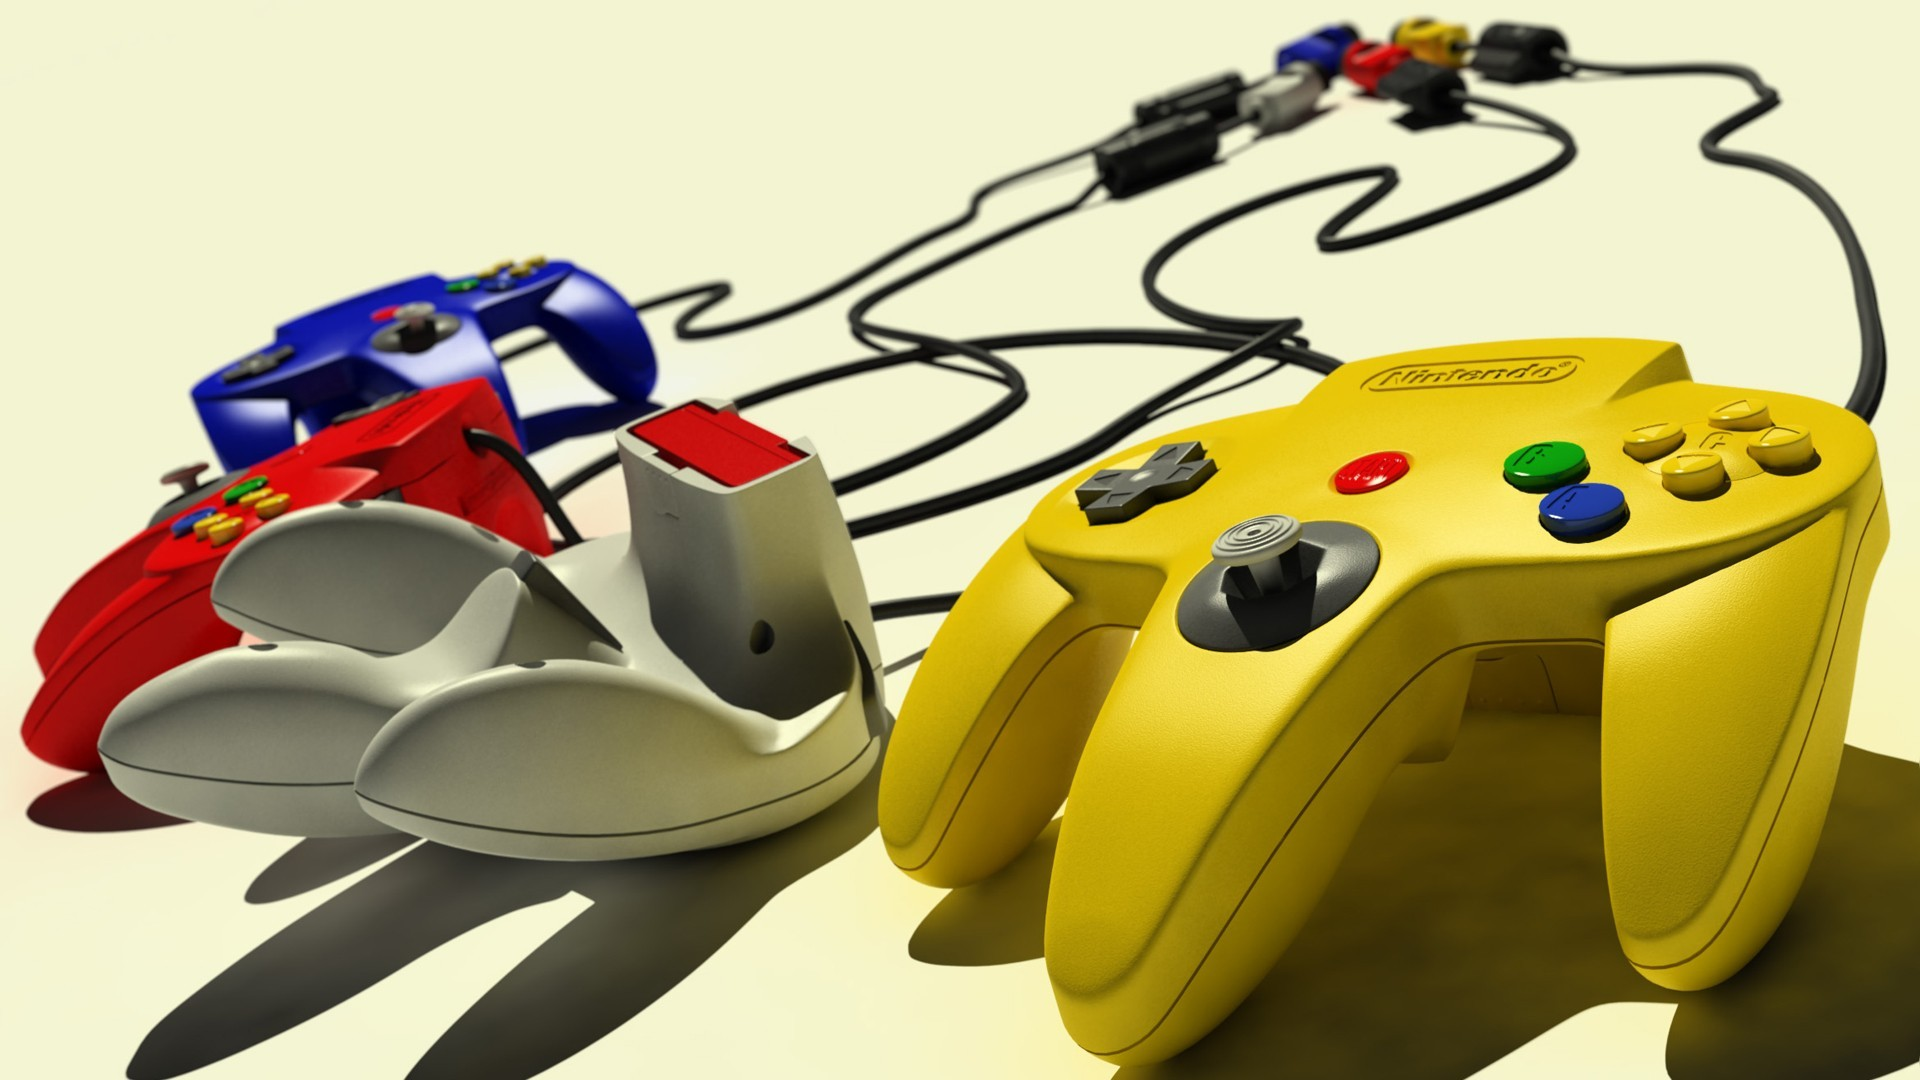 1920x1080 Nintendo 64, Retro Games, Controllers Wallpapers HD / Desktop and Mobile  Backgrounds